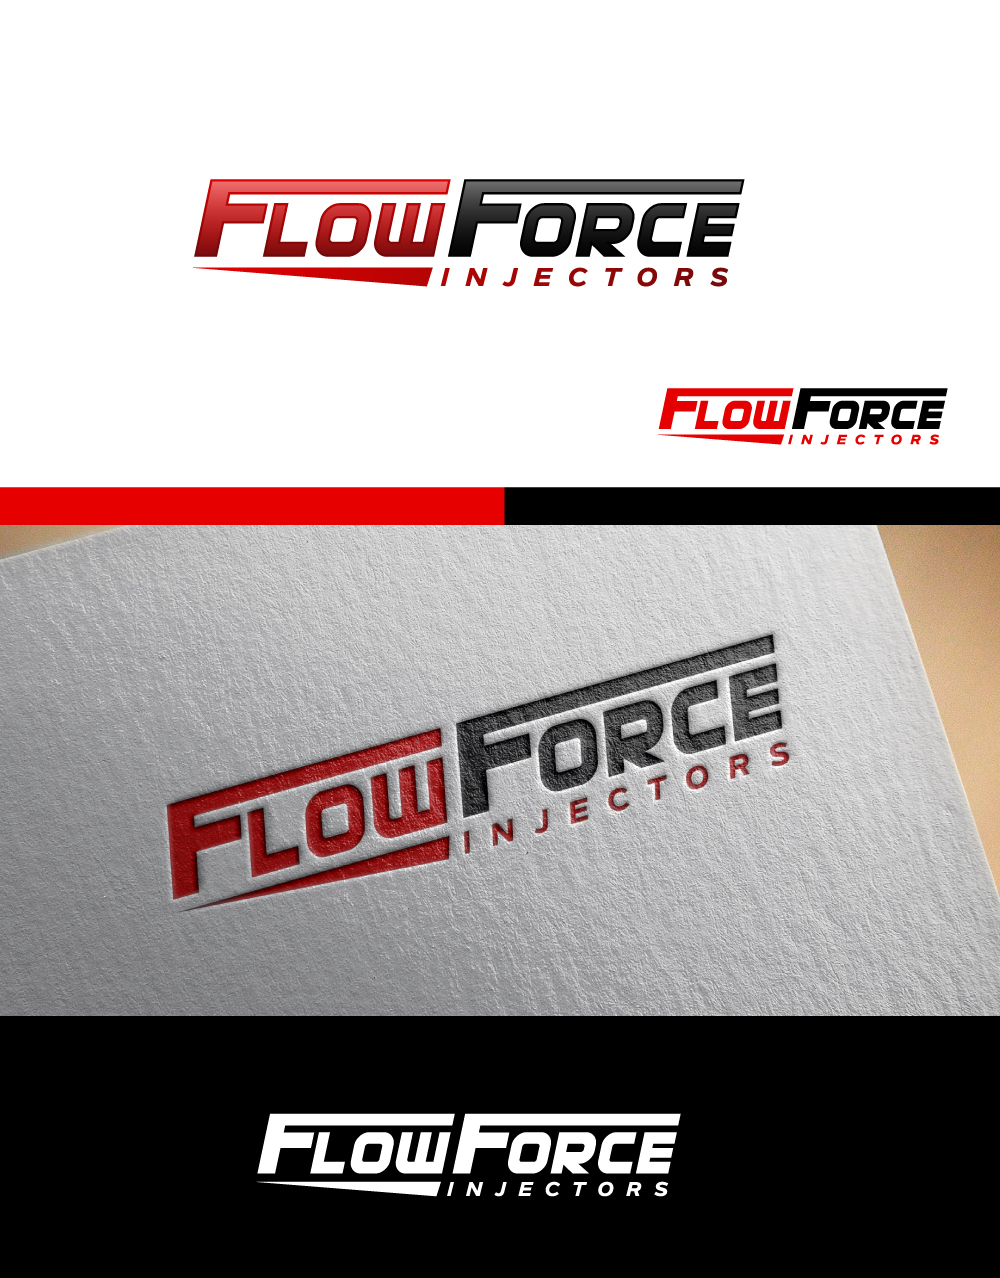 Logo Design by Tauhid Shaikh - Entry No. 35 in the Logo Design Contest Fun Logo Design for Flow Force Injectors.